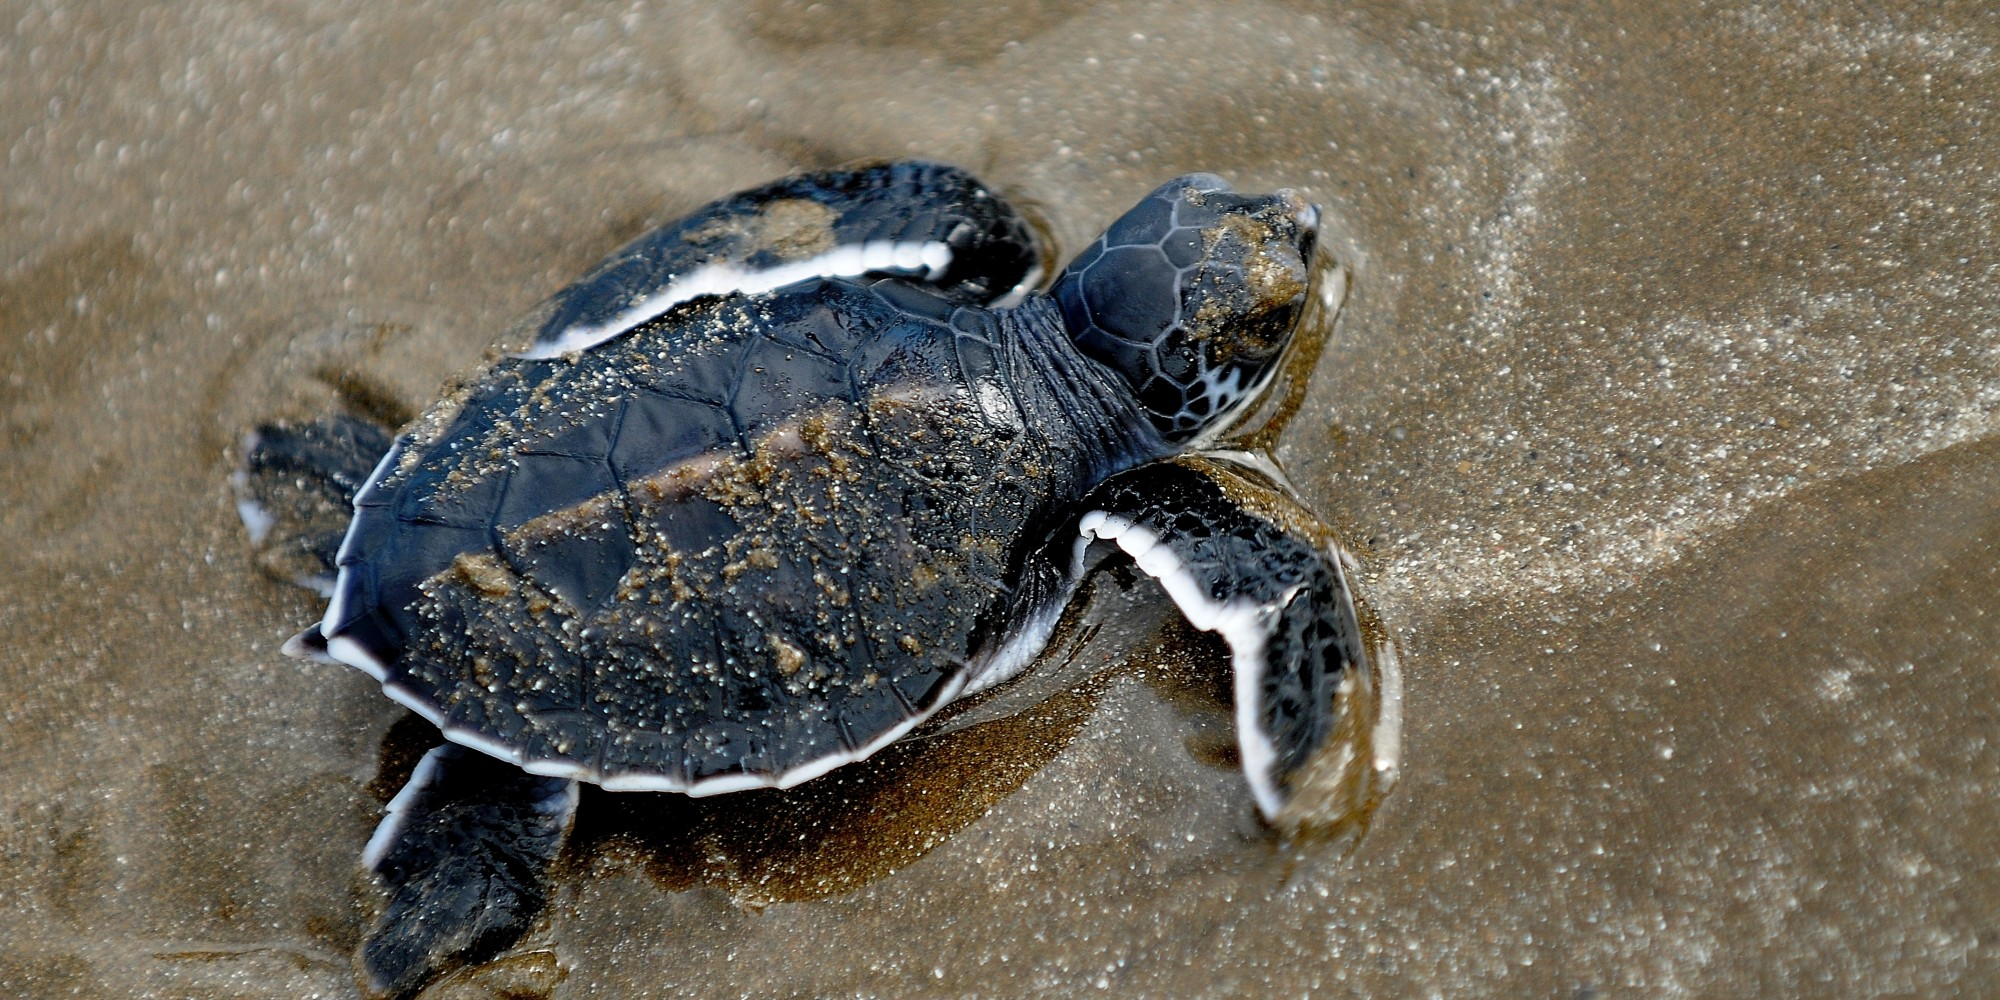 Cute baby sea turtles in the water - photo#5